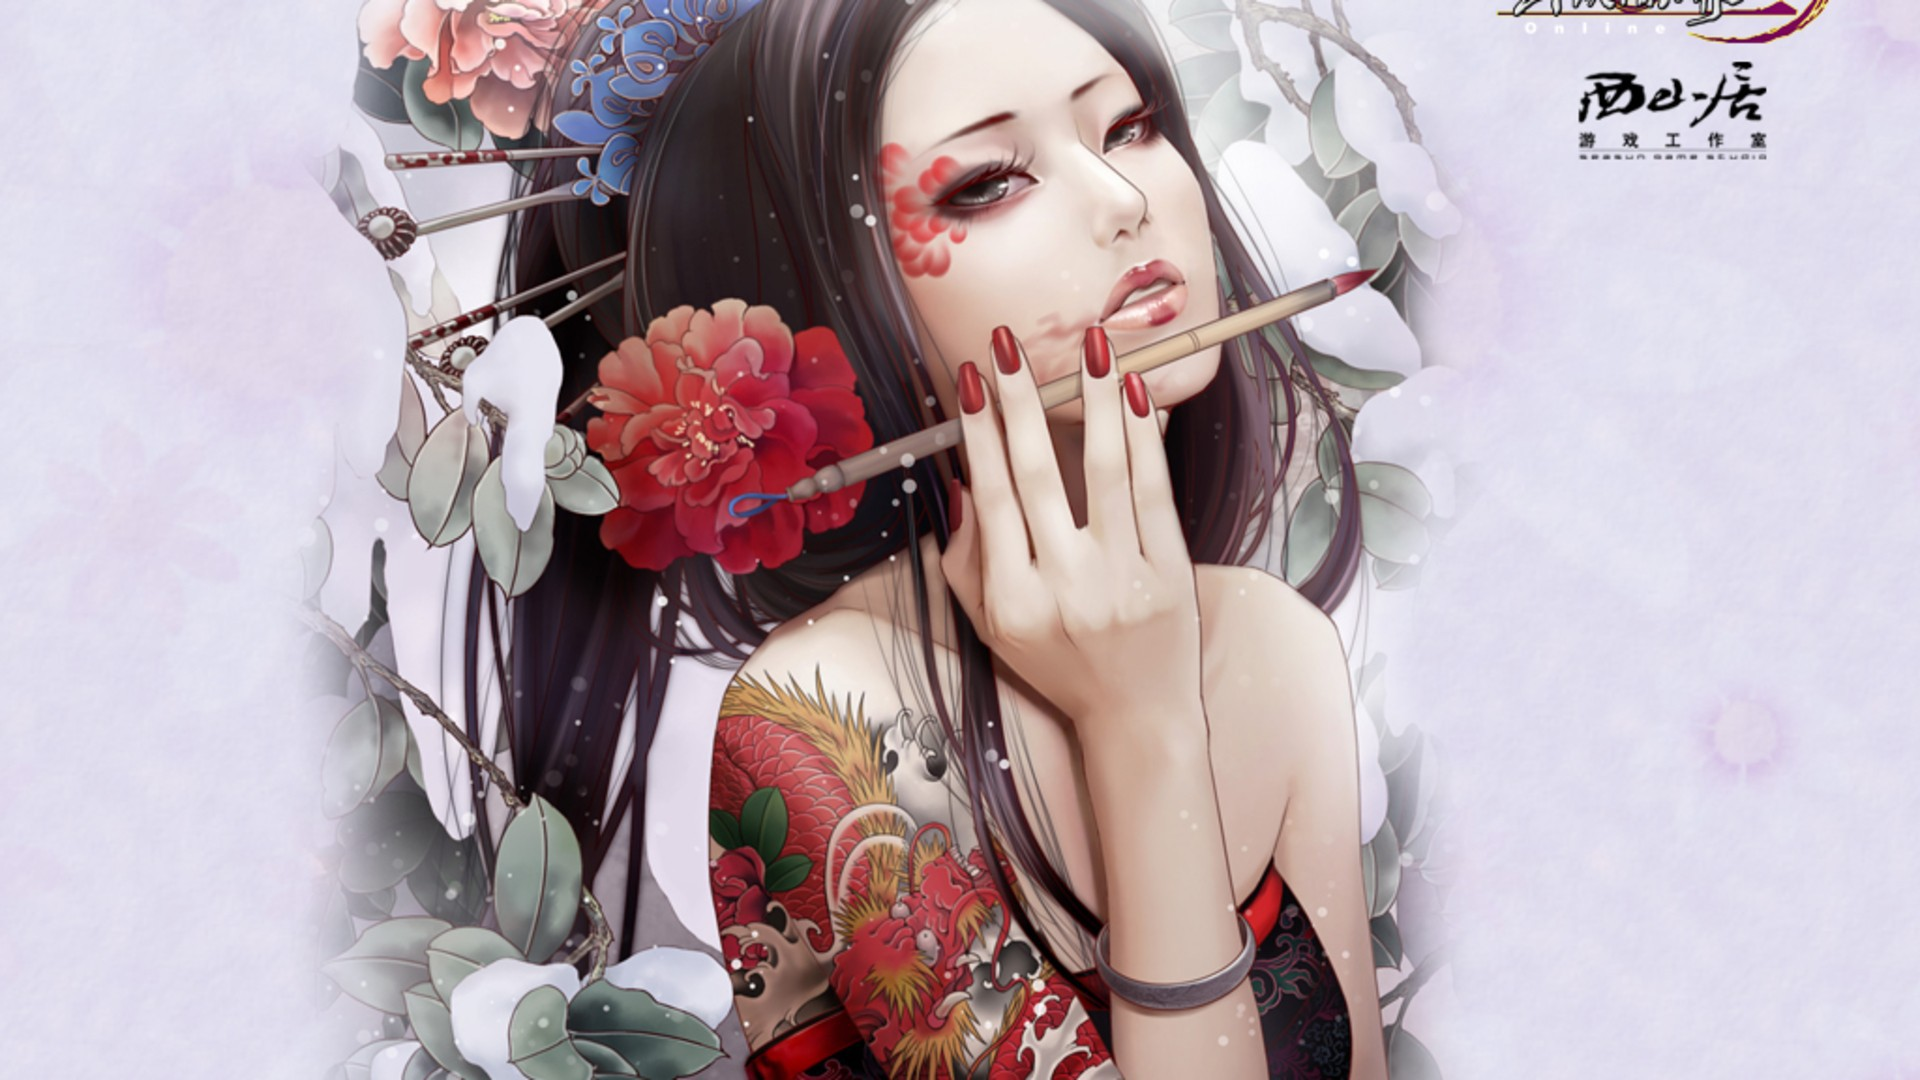 Japanese style wallpapers and images   wallpapers pictures photos 1920x1080